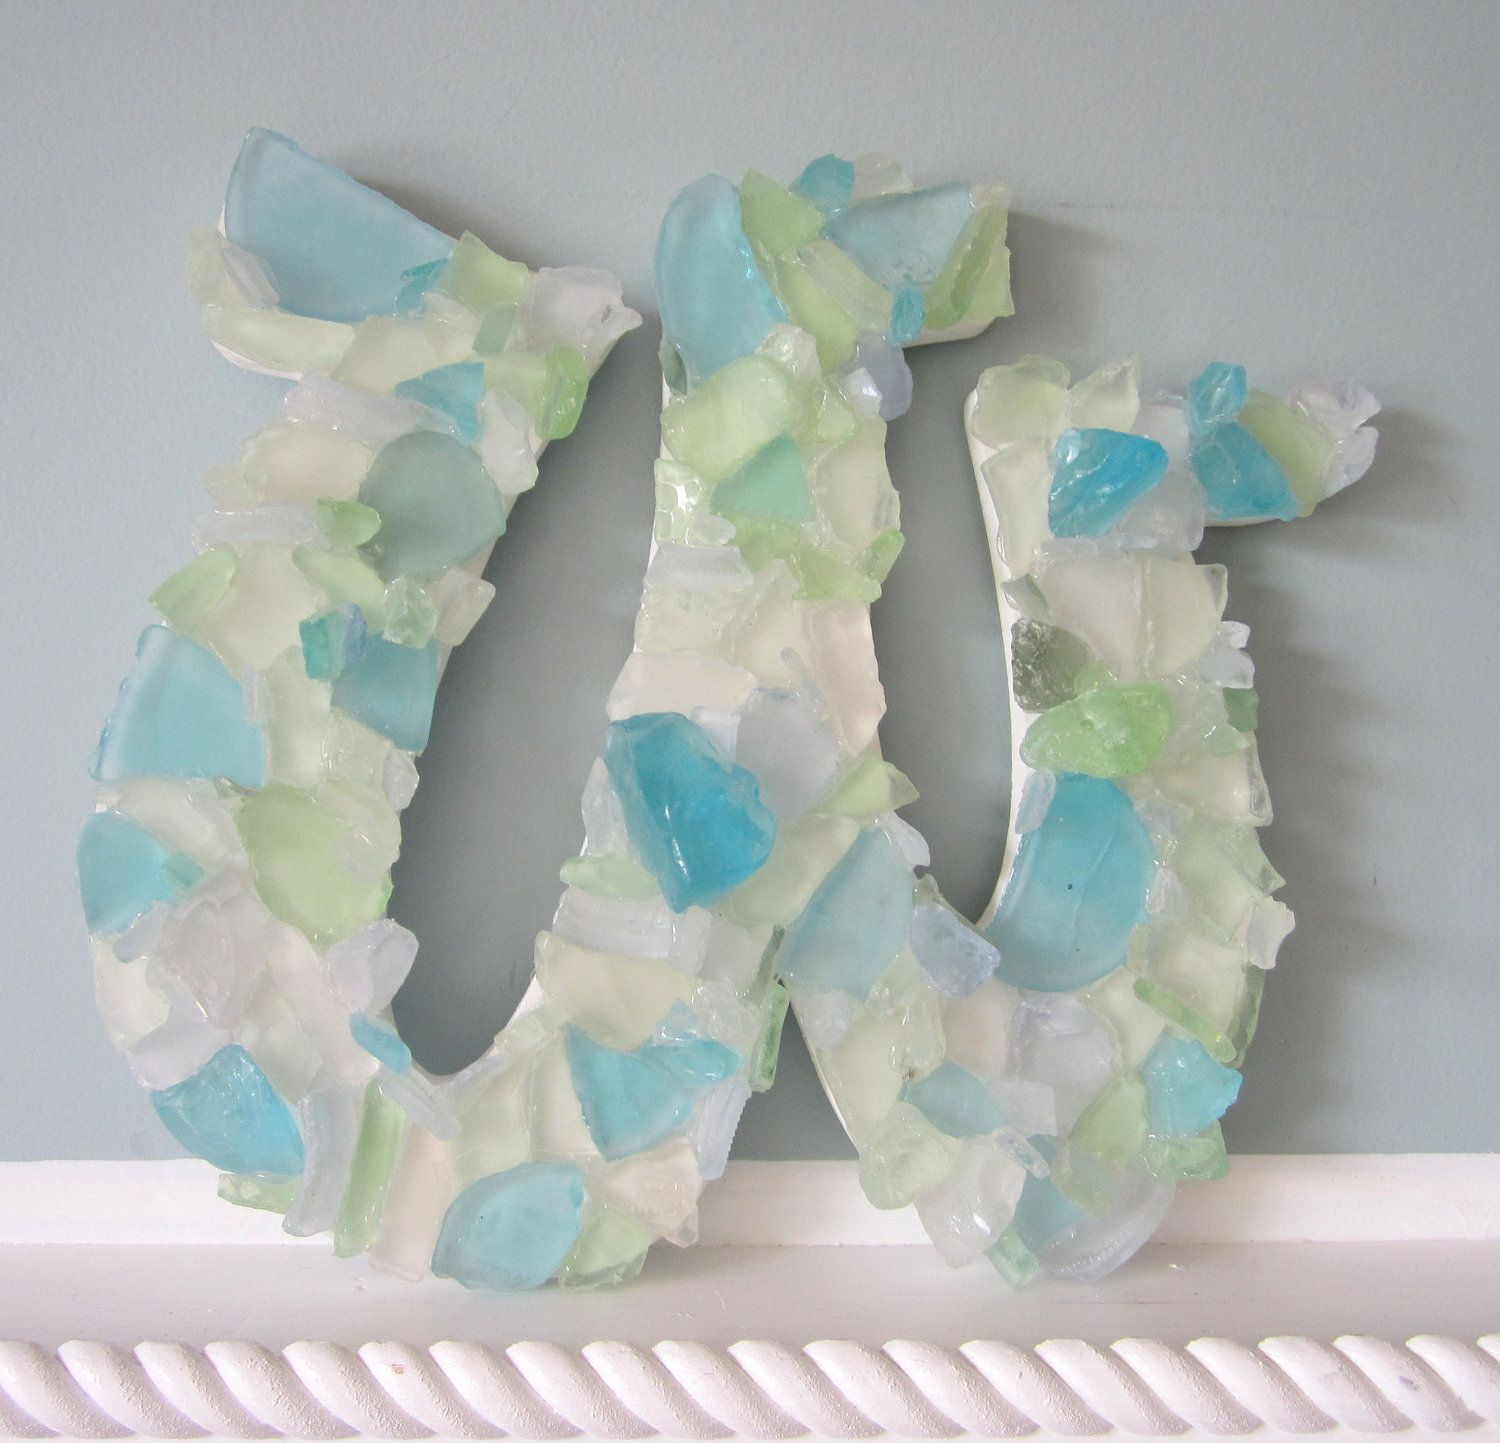 Glass Letters For Wall Nautical Decor Wall Letters  Sea Glass  Beach Decor Glass